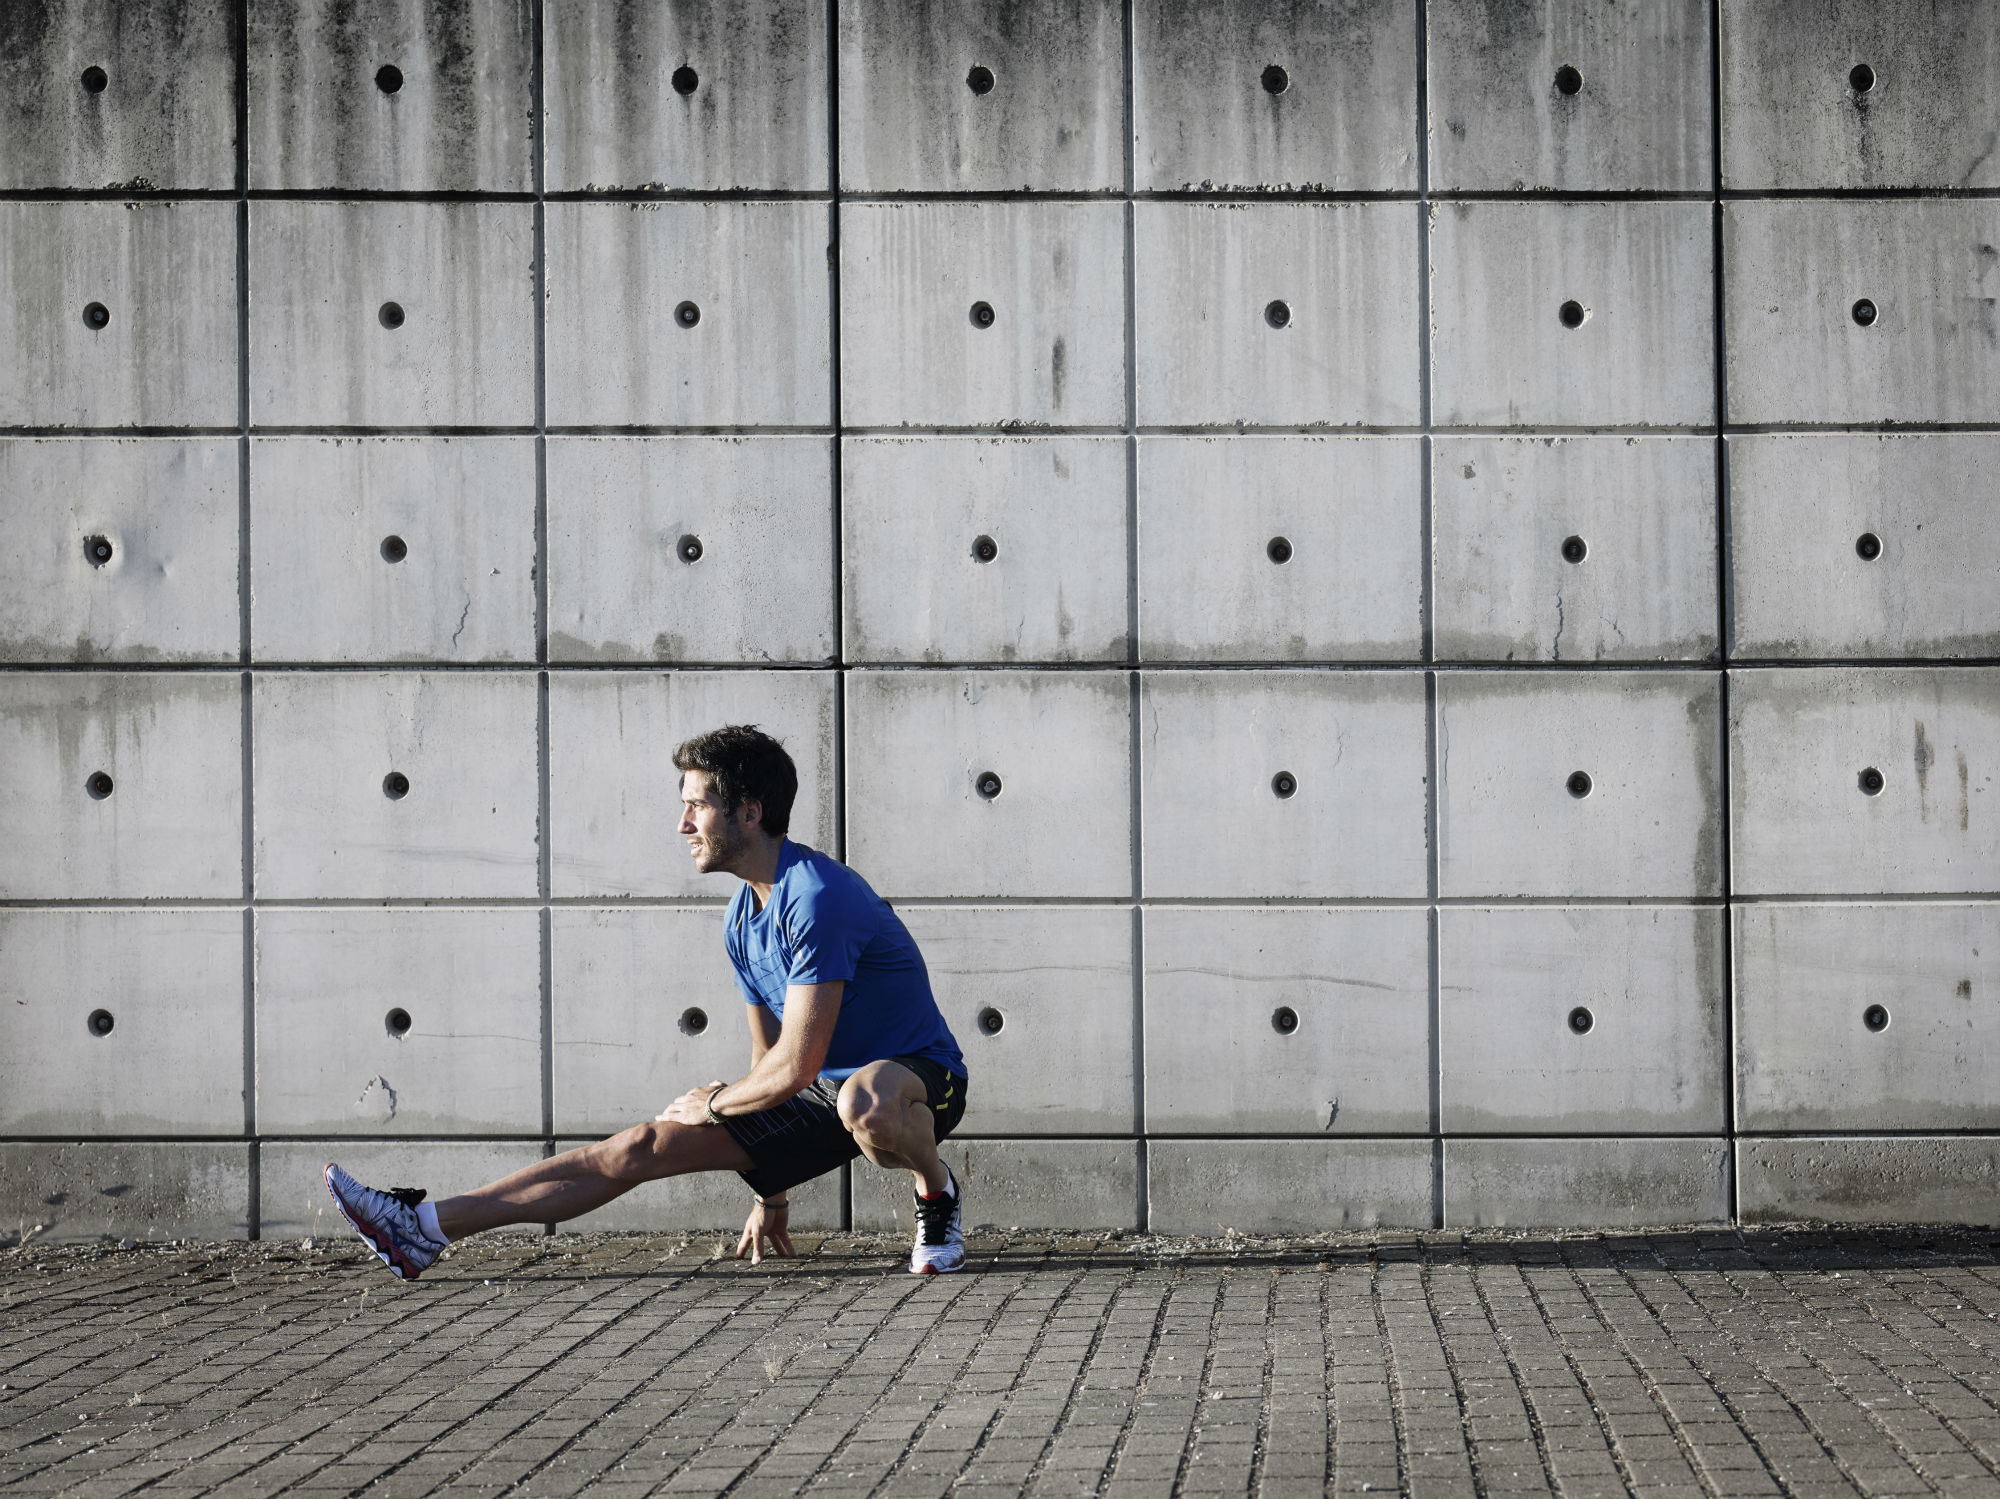 How should I start exercising again after an injury?